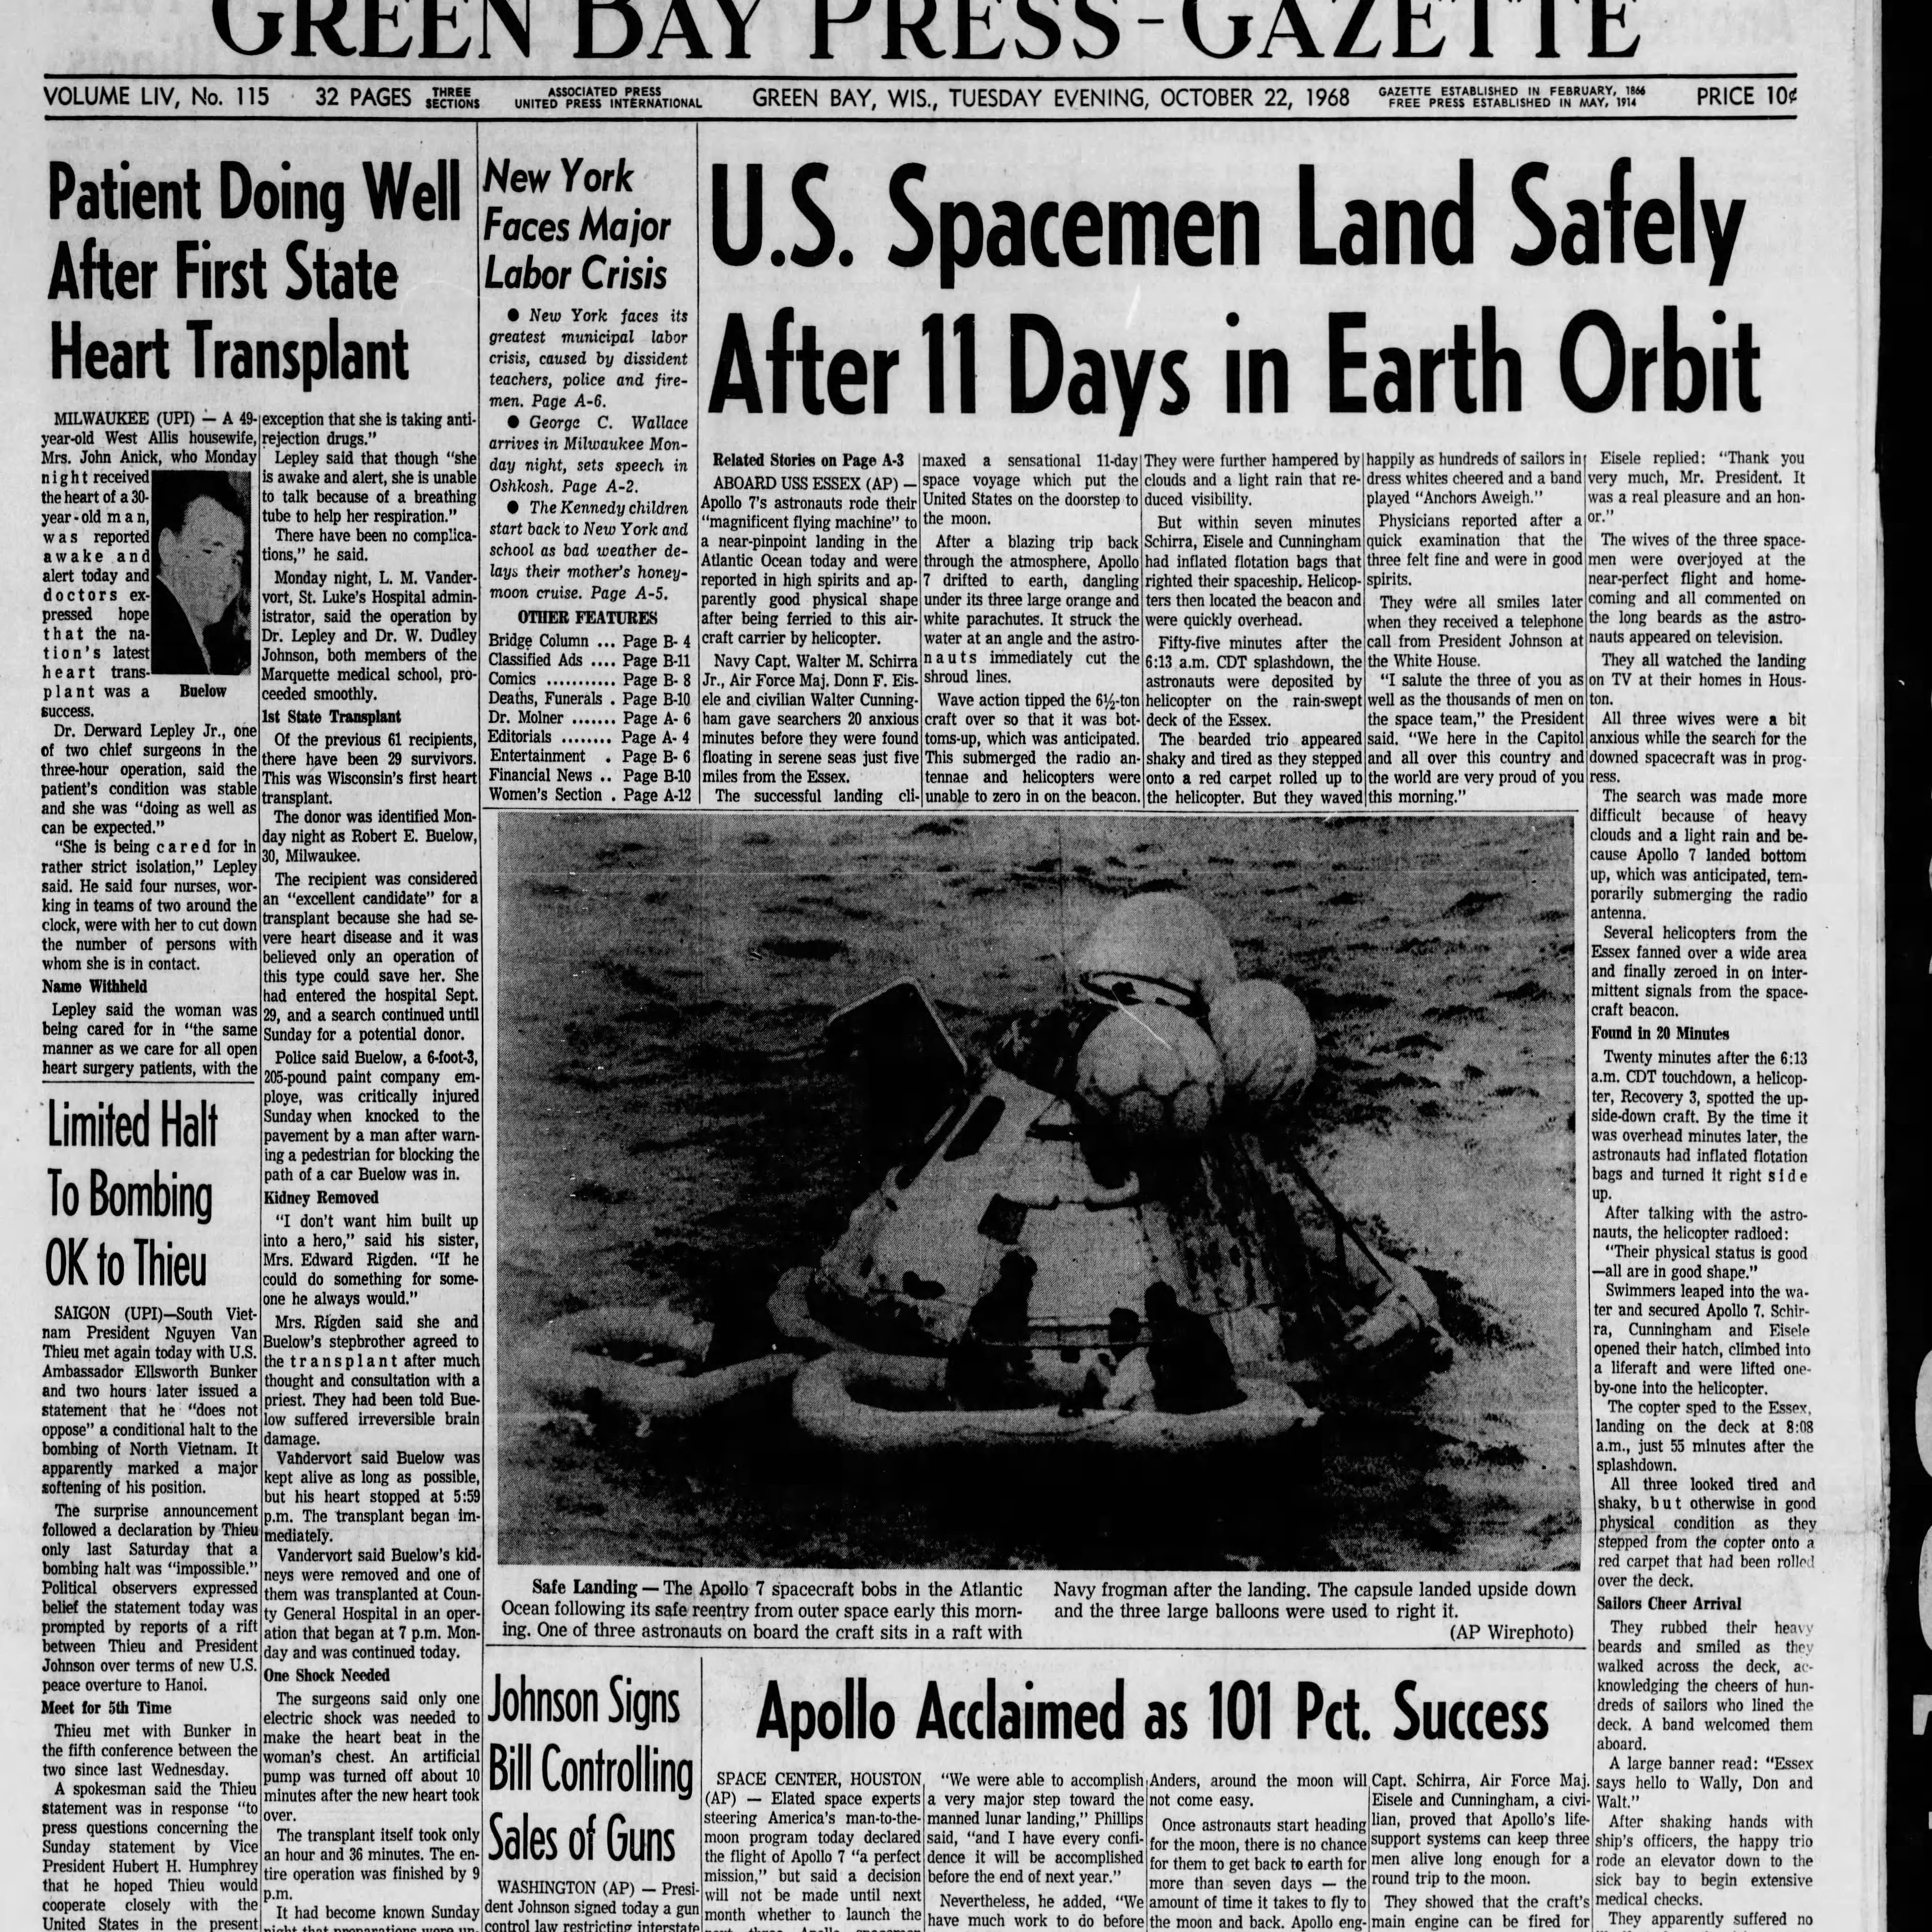 Green Bay Press-Gazette Today in History: Oct. 22